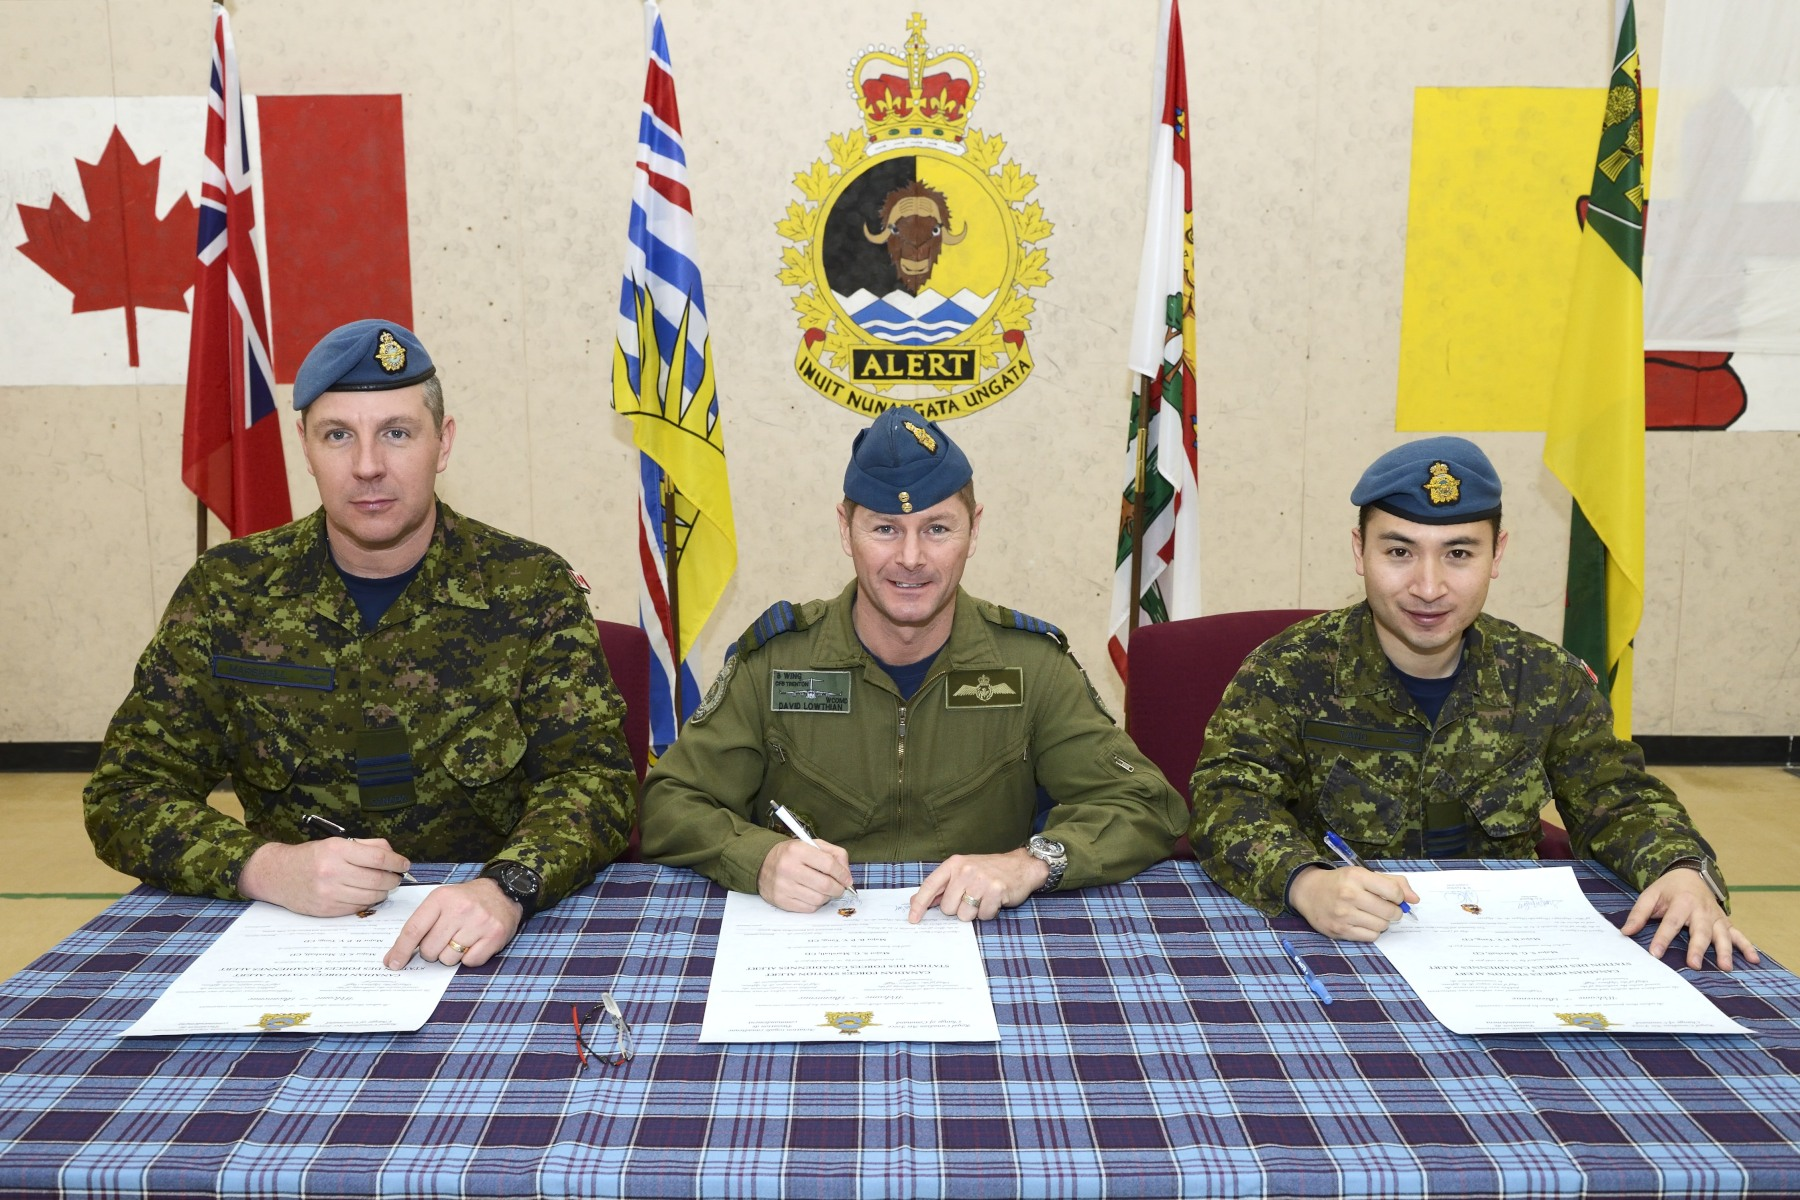 The outgoing Commanding Officer of CFS Alert, Major Scott Marshall (left), the Presiding Officer, Colonel David Lowthian (middle) and the incoming Commanding Officer of CFS Alert, Major Brian Tang (right) signed the scroll.